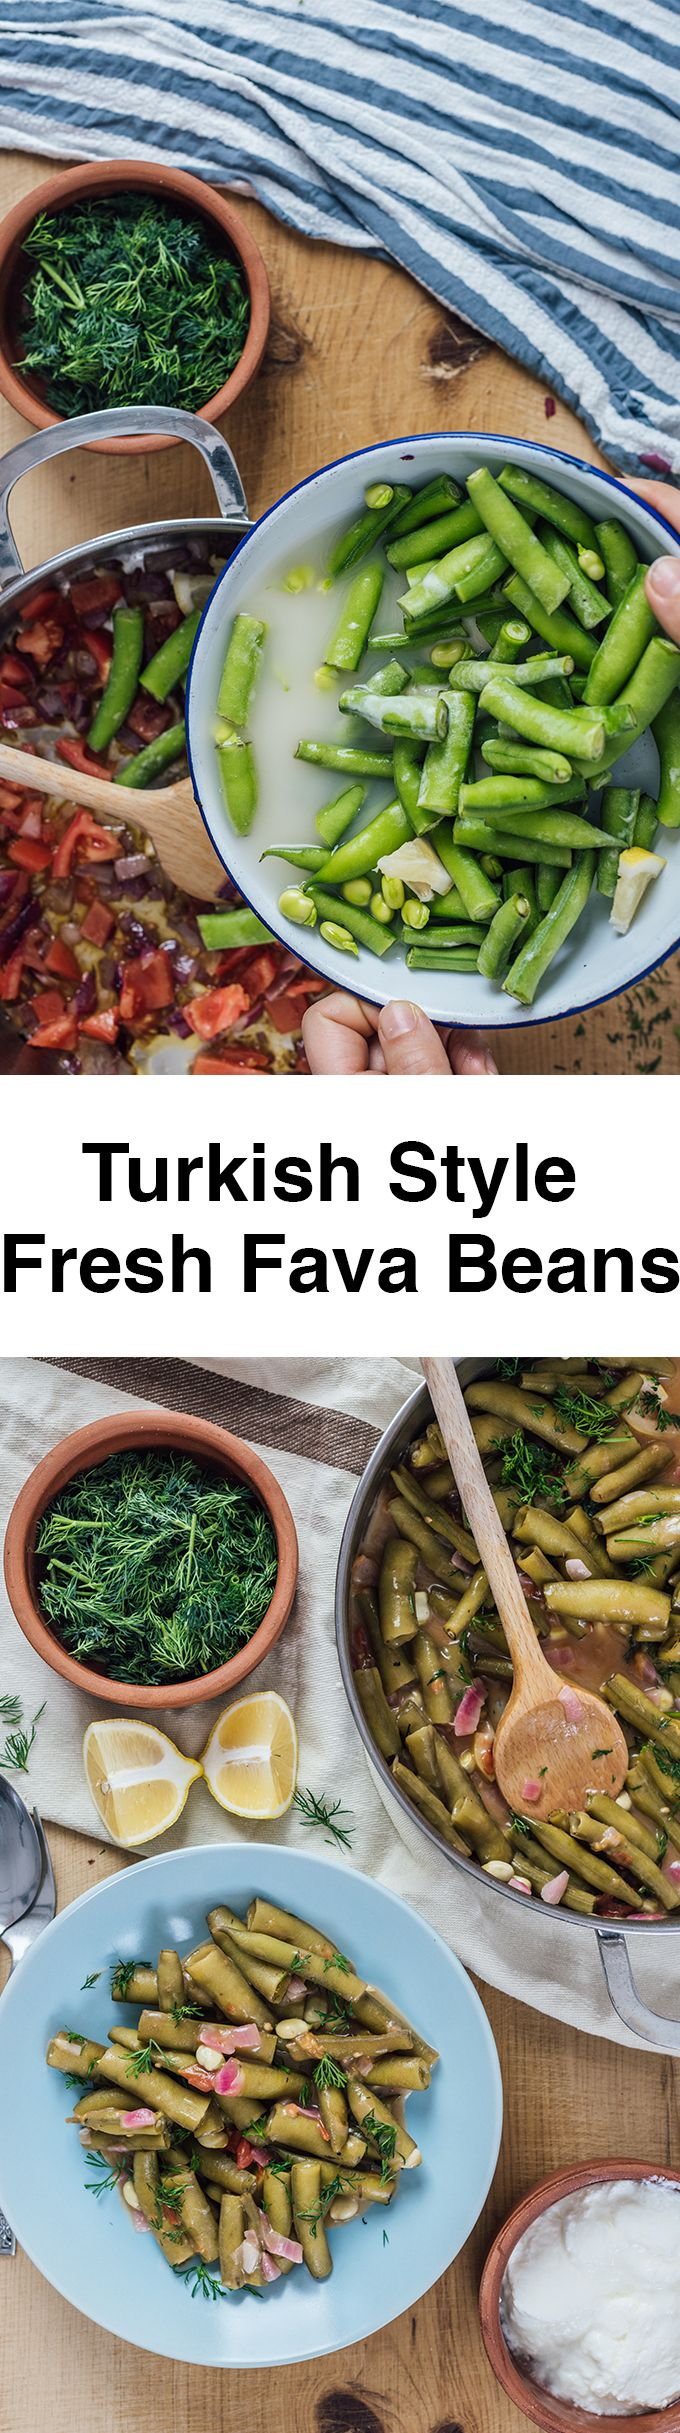 Fresh Fava Beans are braised in olive oil with tomatoes and onions and served at room temperature with lemon and yogurt. This is my favorite meatless dinner in spring.